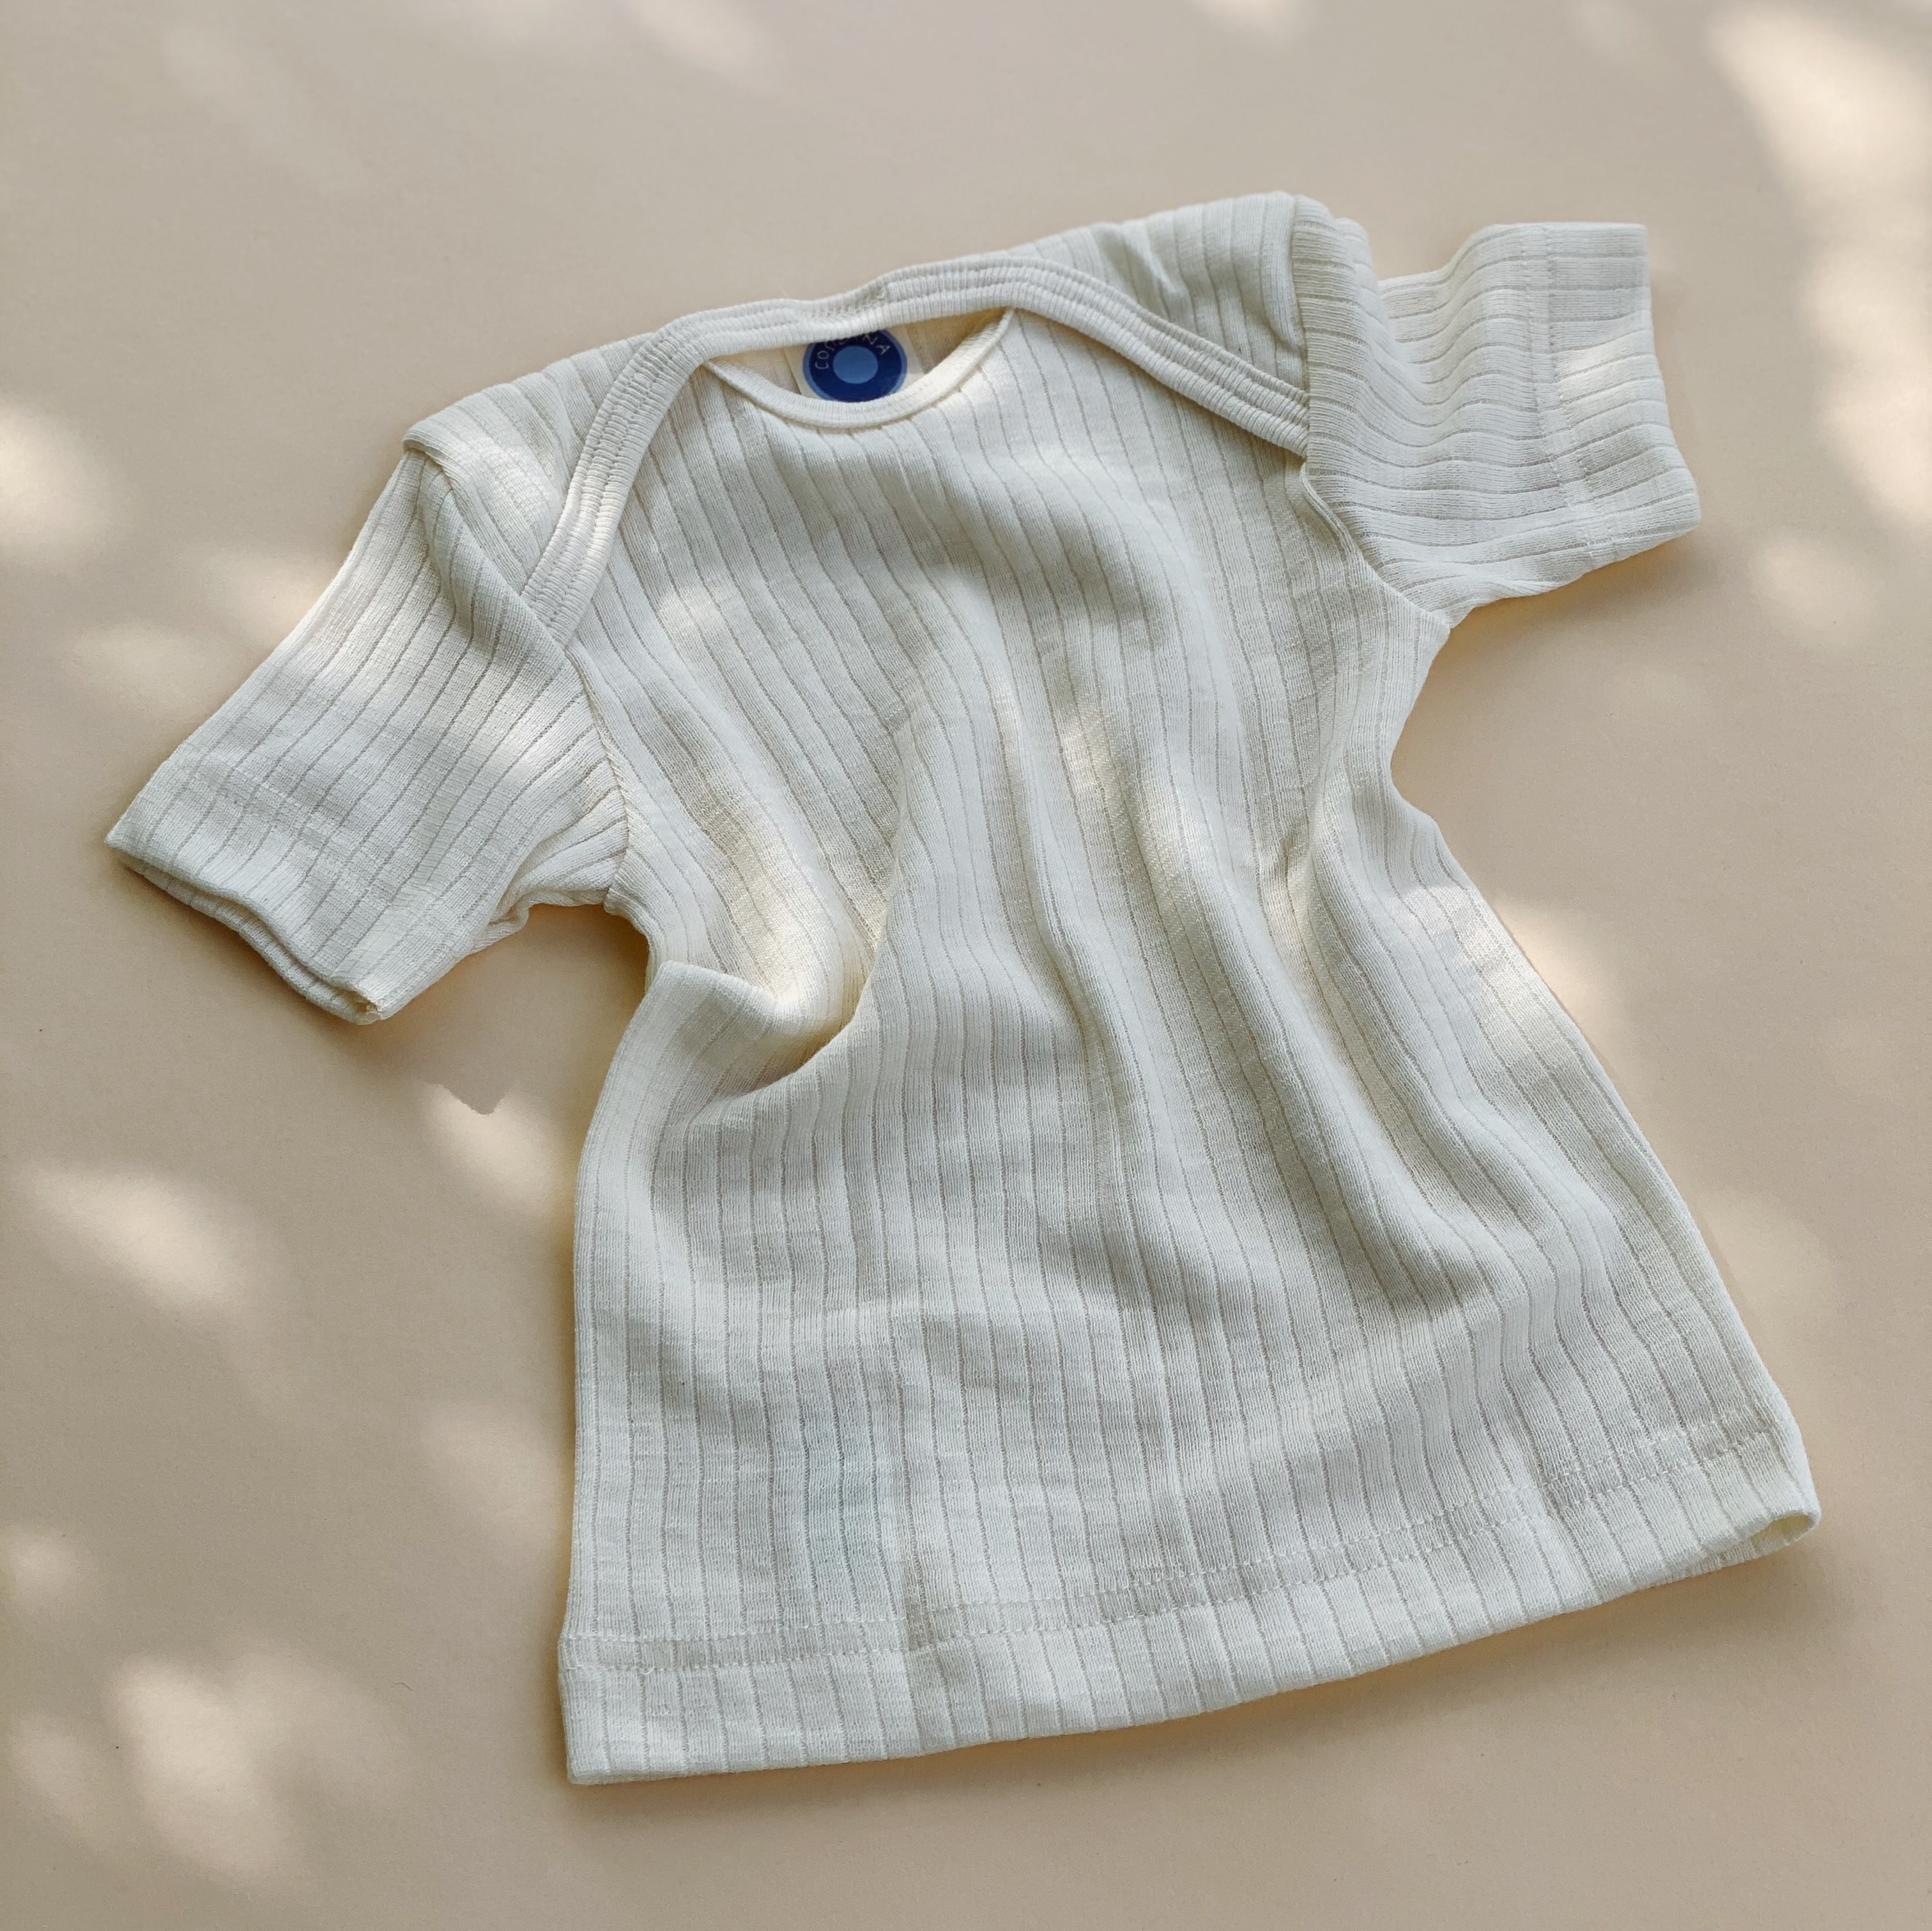 Picture of: Cosilana Bluse Baby K Ae Uld Silke Bomuld Natur Cosilana Okounger